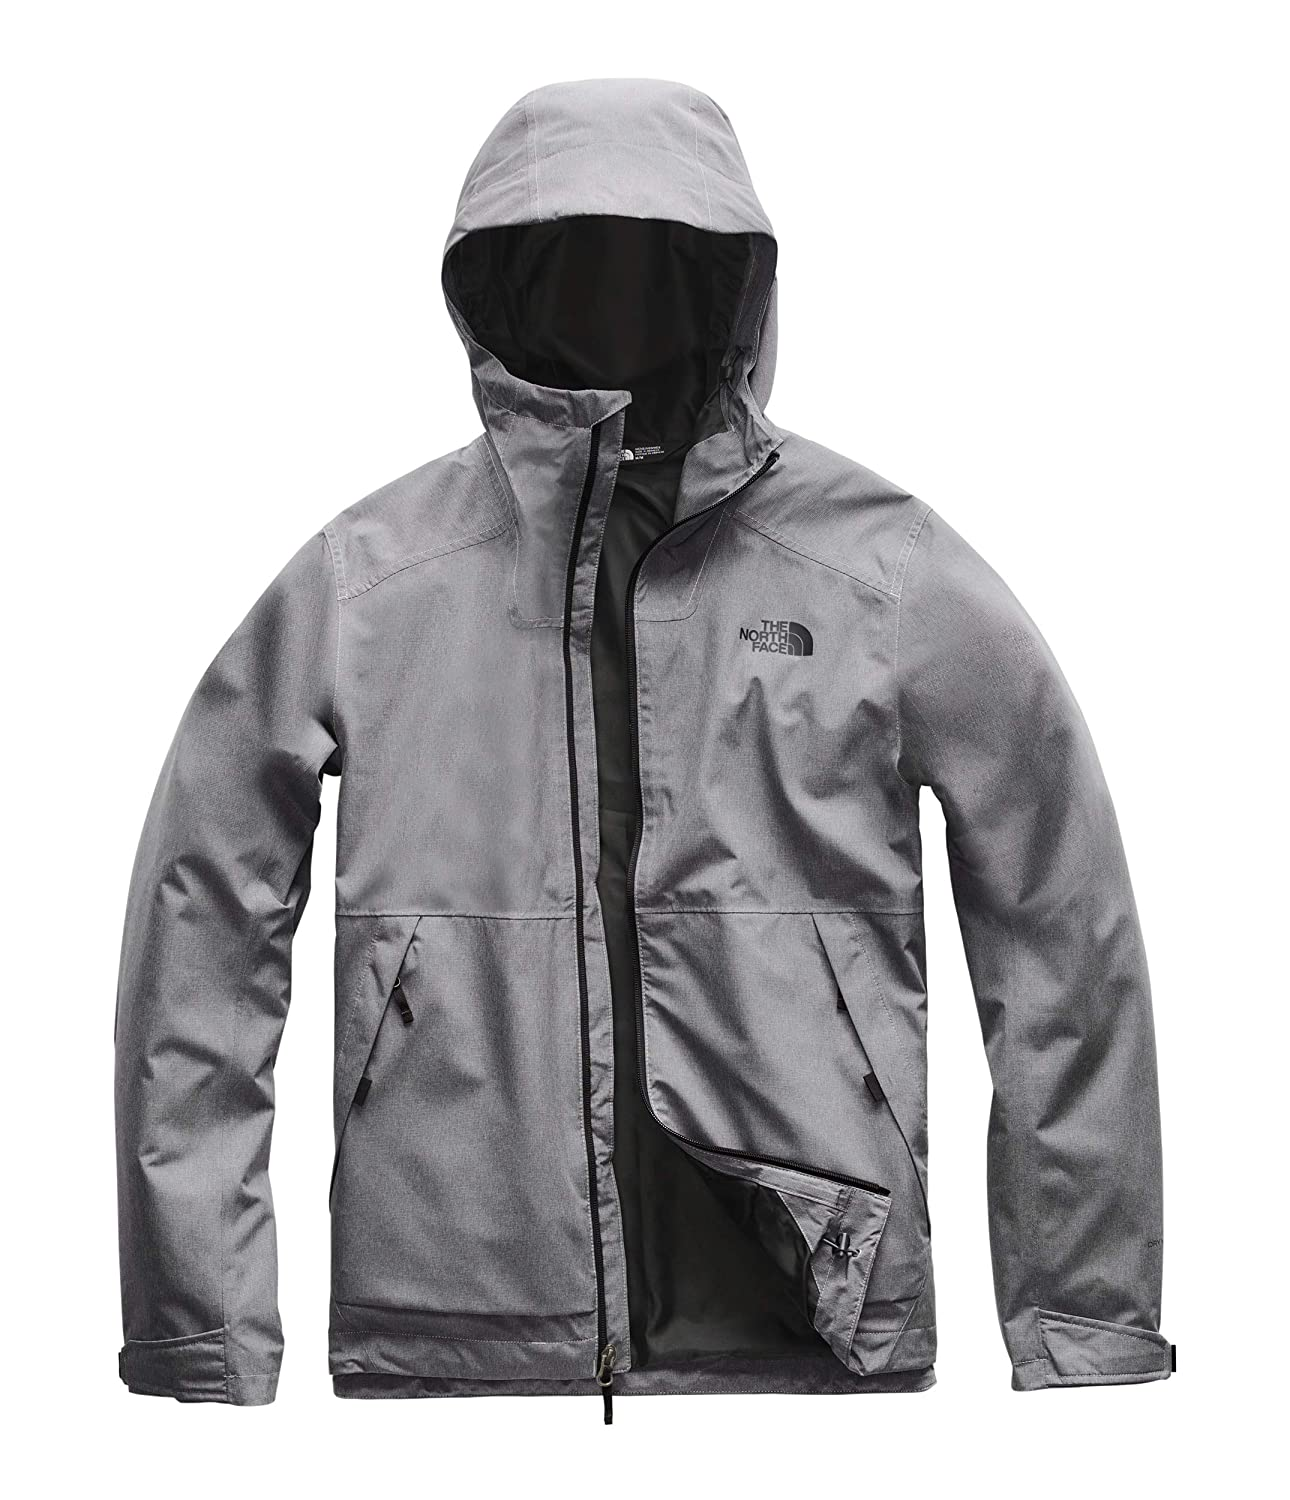 9b58c8df1fccb The North Face Men's Millerton Jacket at Amazon Men's Clothing store: